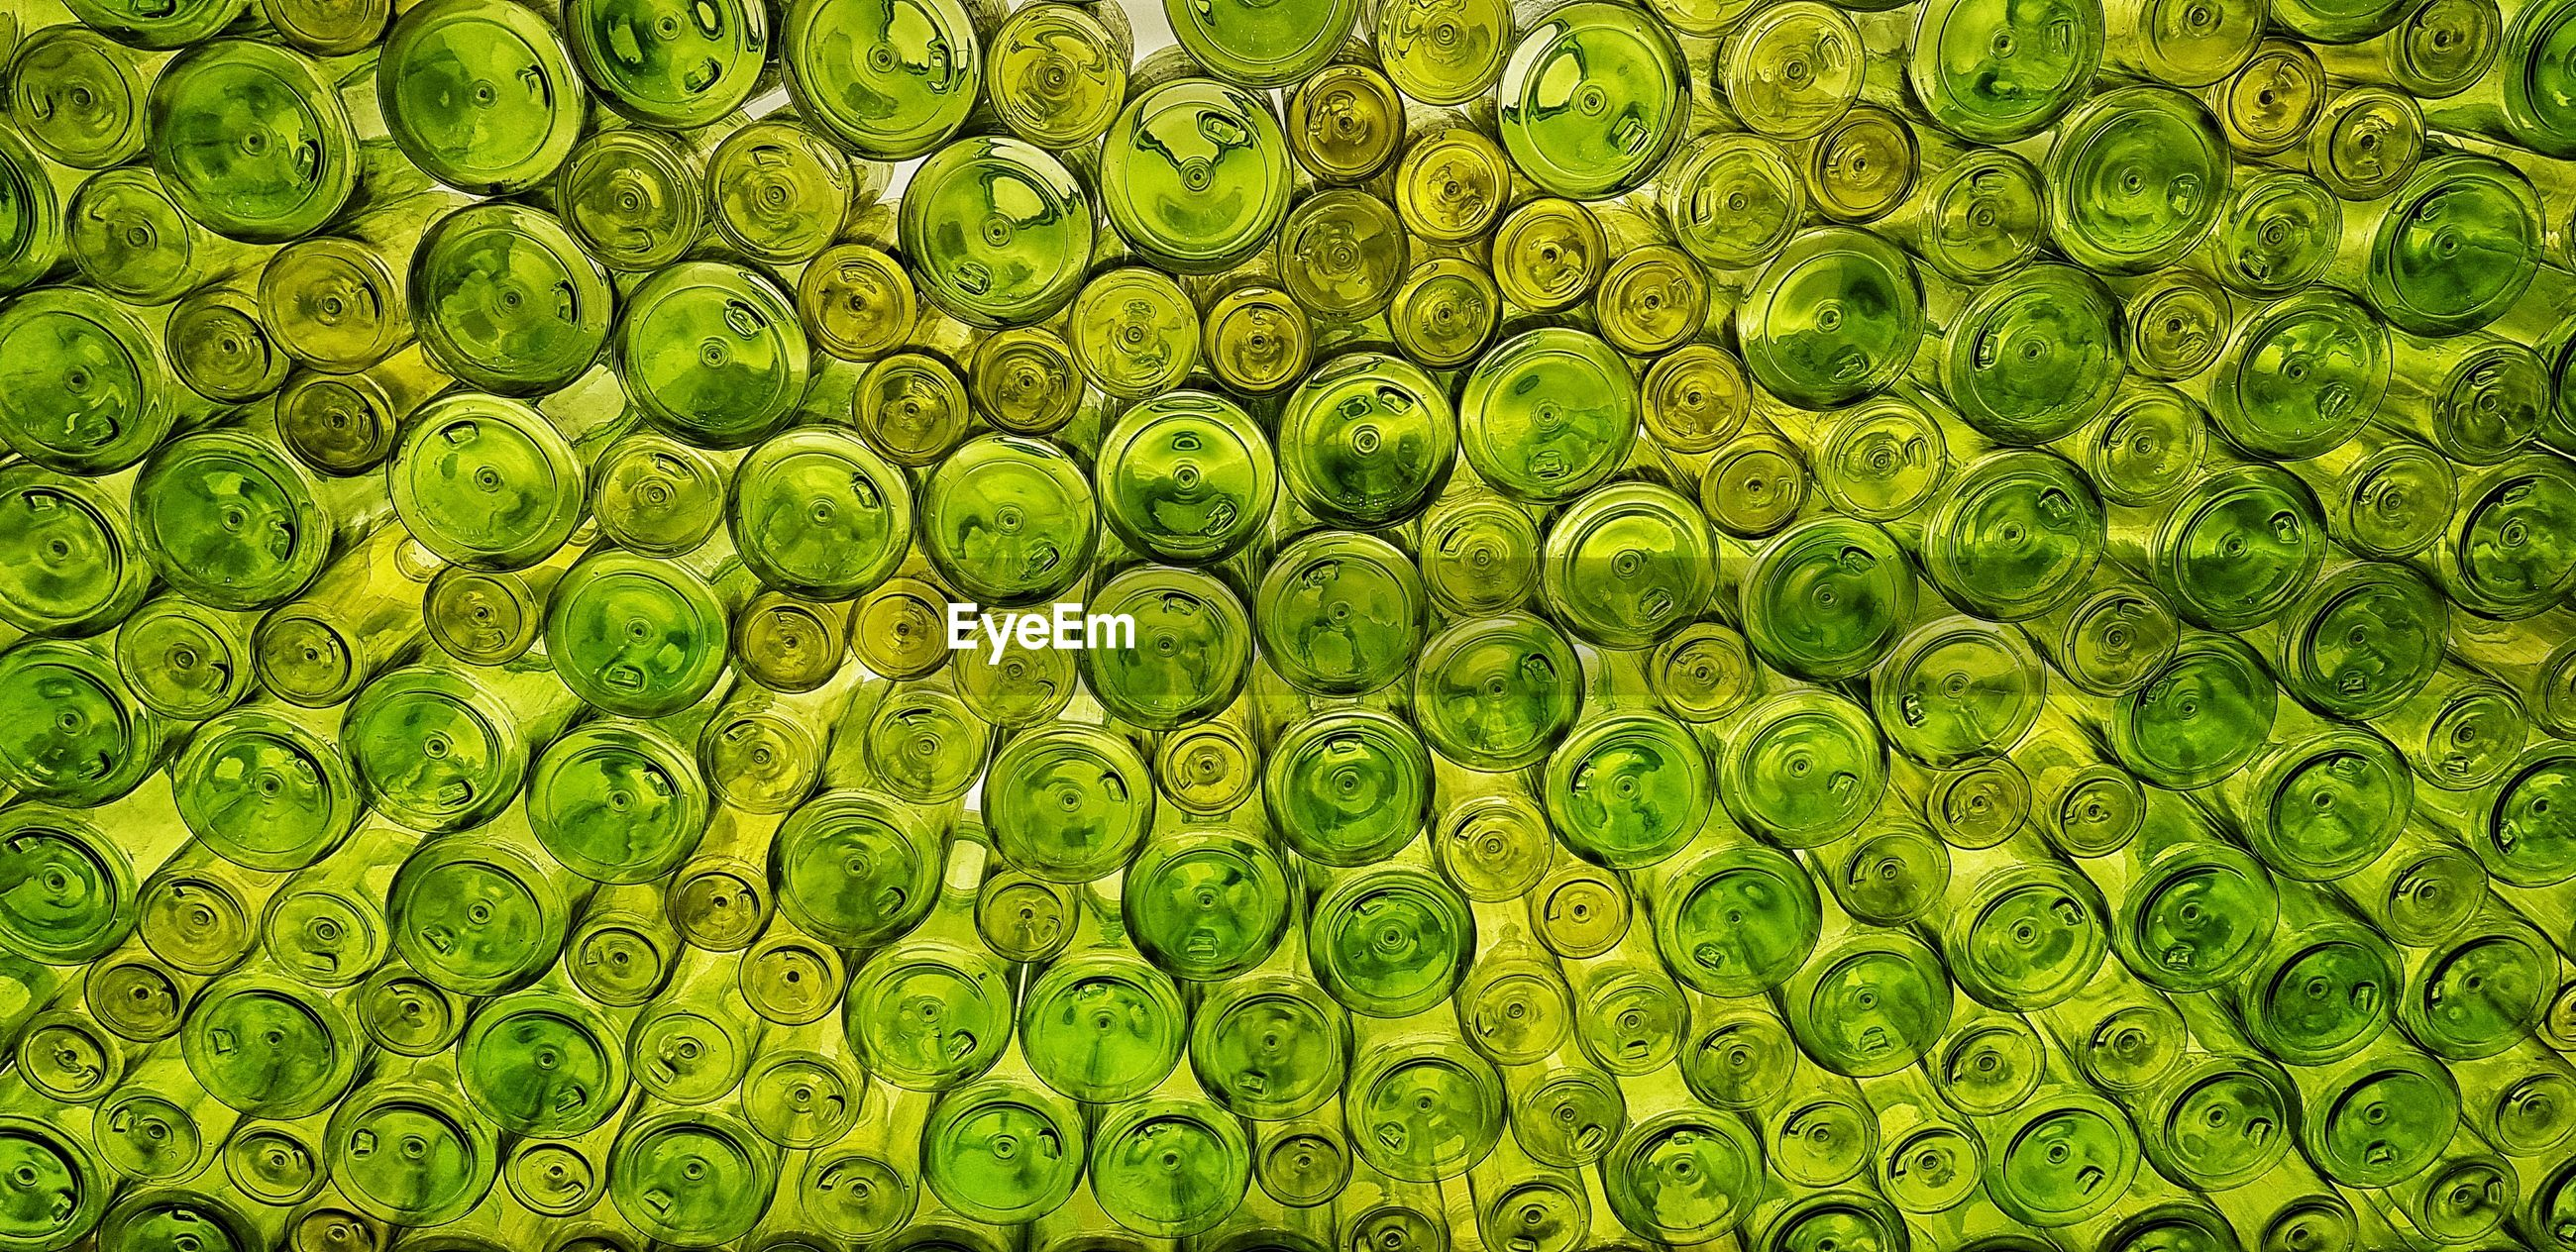 A study in green. a wall made of recycled green bottles.